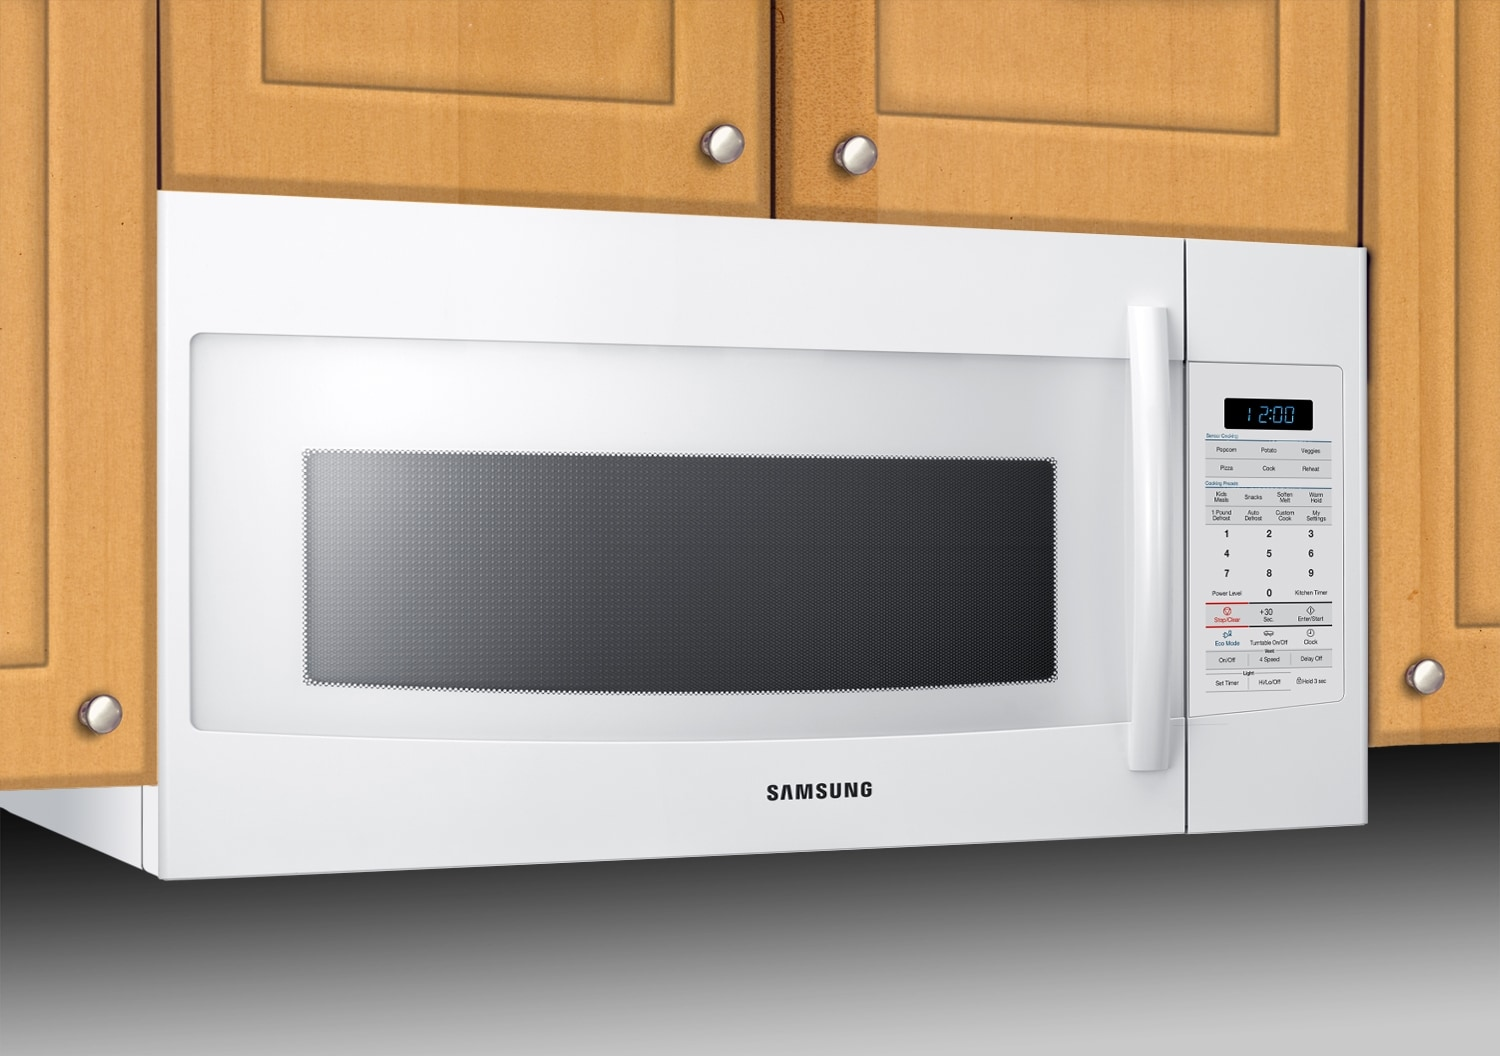 Lowes microwaves over the range white - Black Microwave Over The Range Frigidaire 1500x1056 Cooking